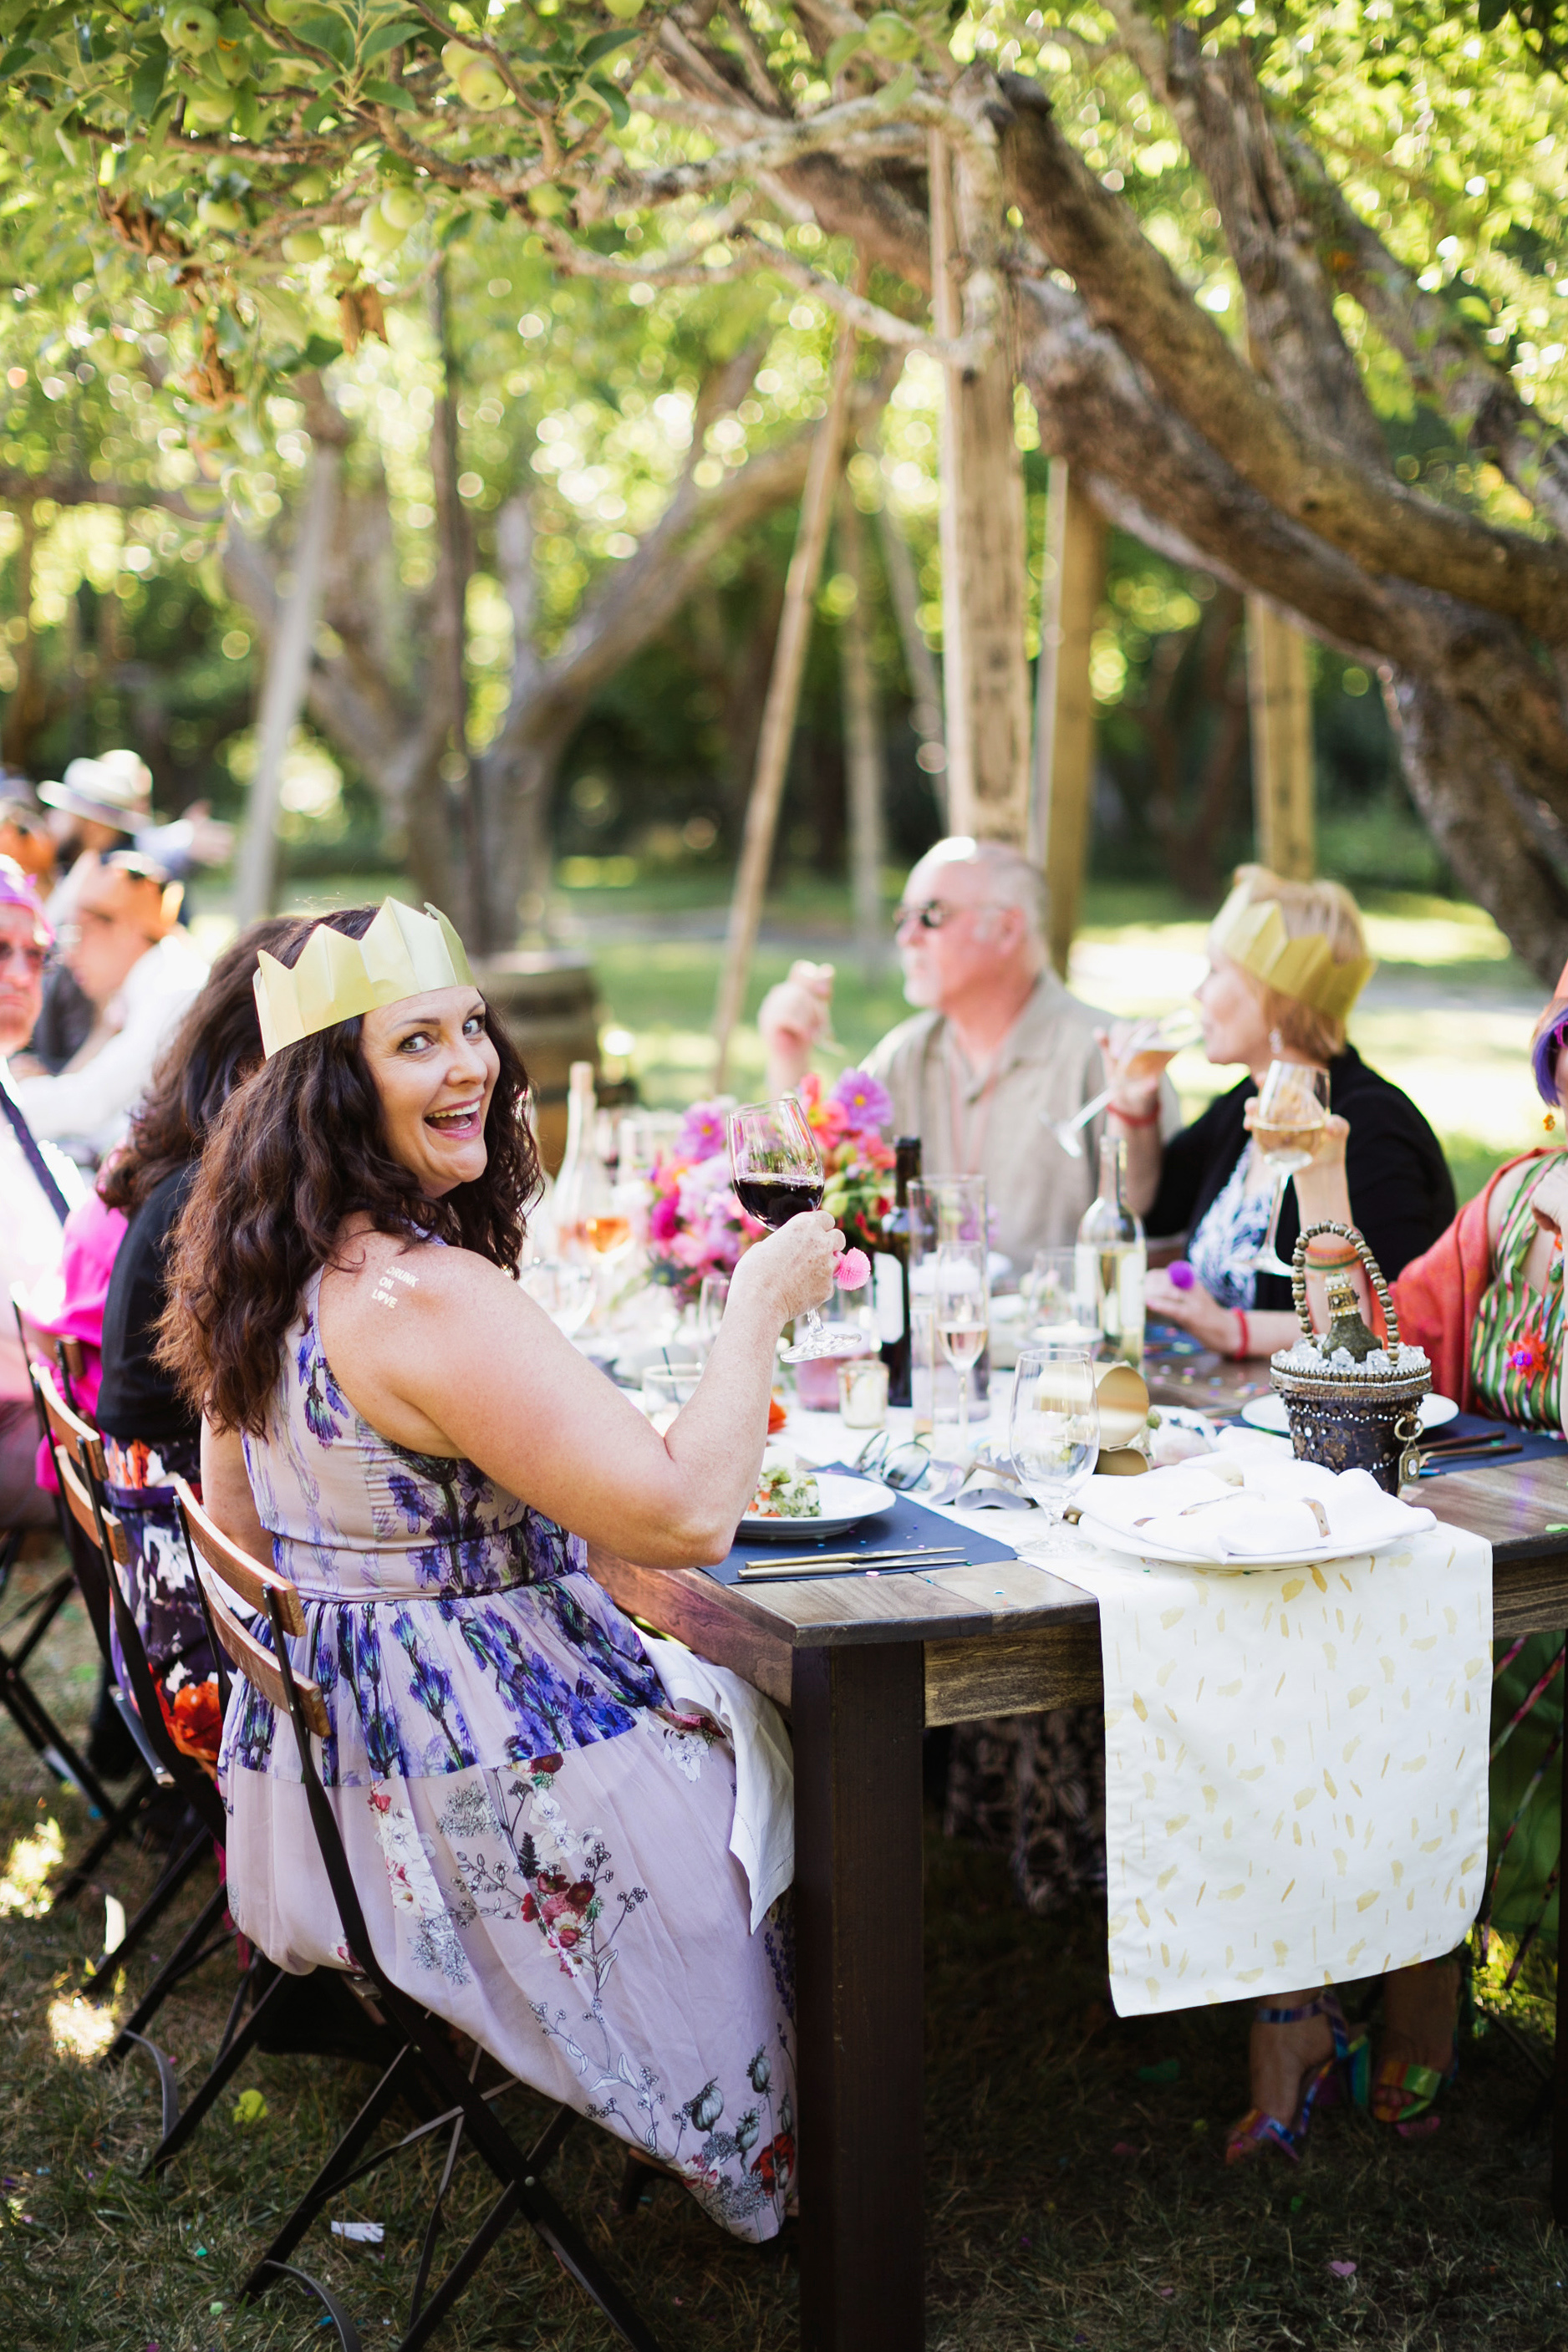 5 Ways to Celebrate an Important Guest's Birthday at Your Wedding